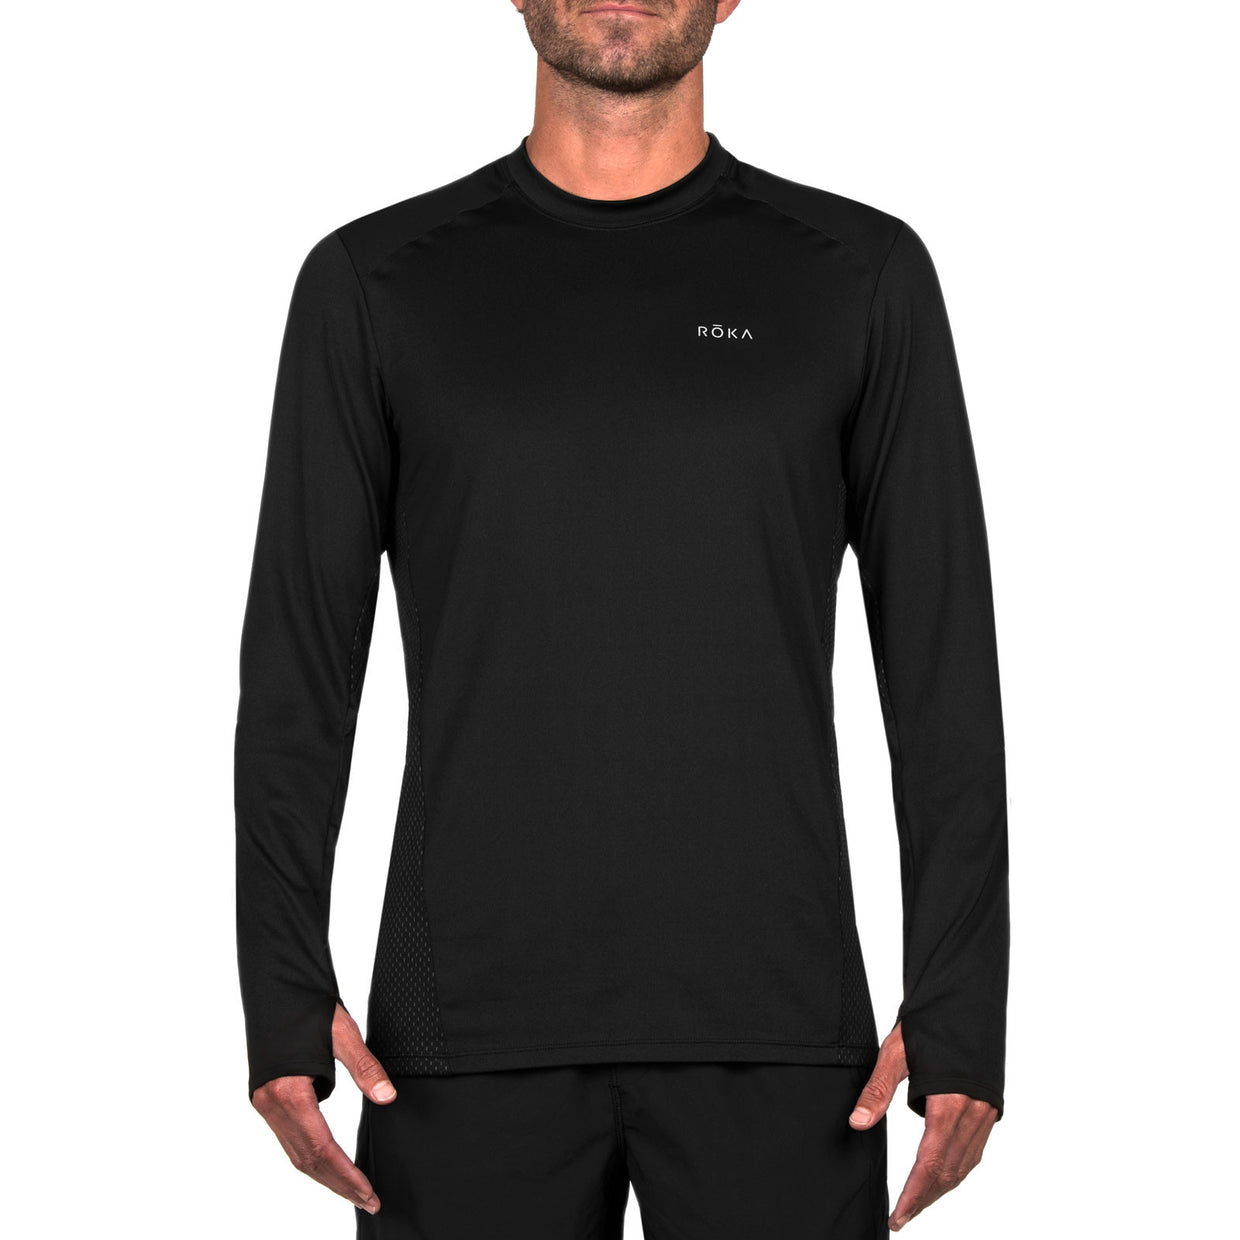 Men's Elite All-Season Run LS Shirt (Black/Dark Slate)